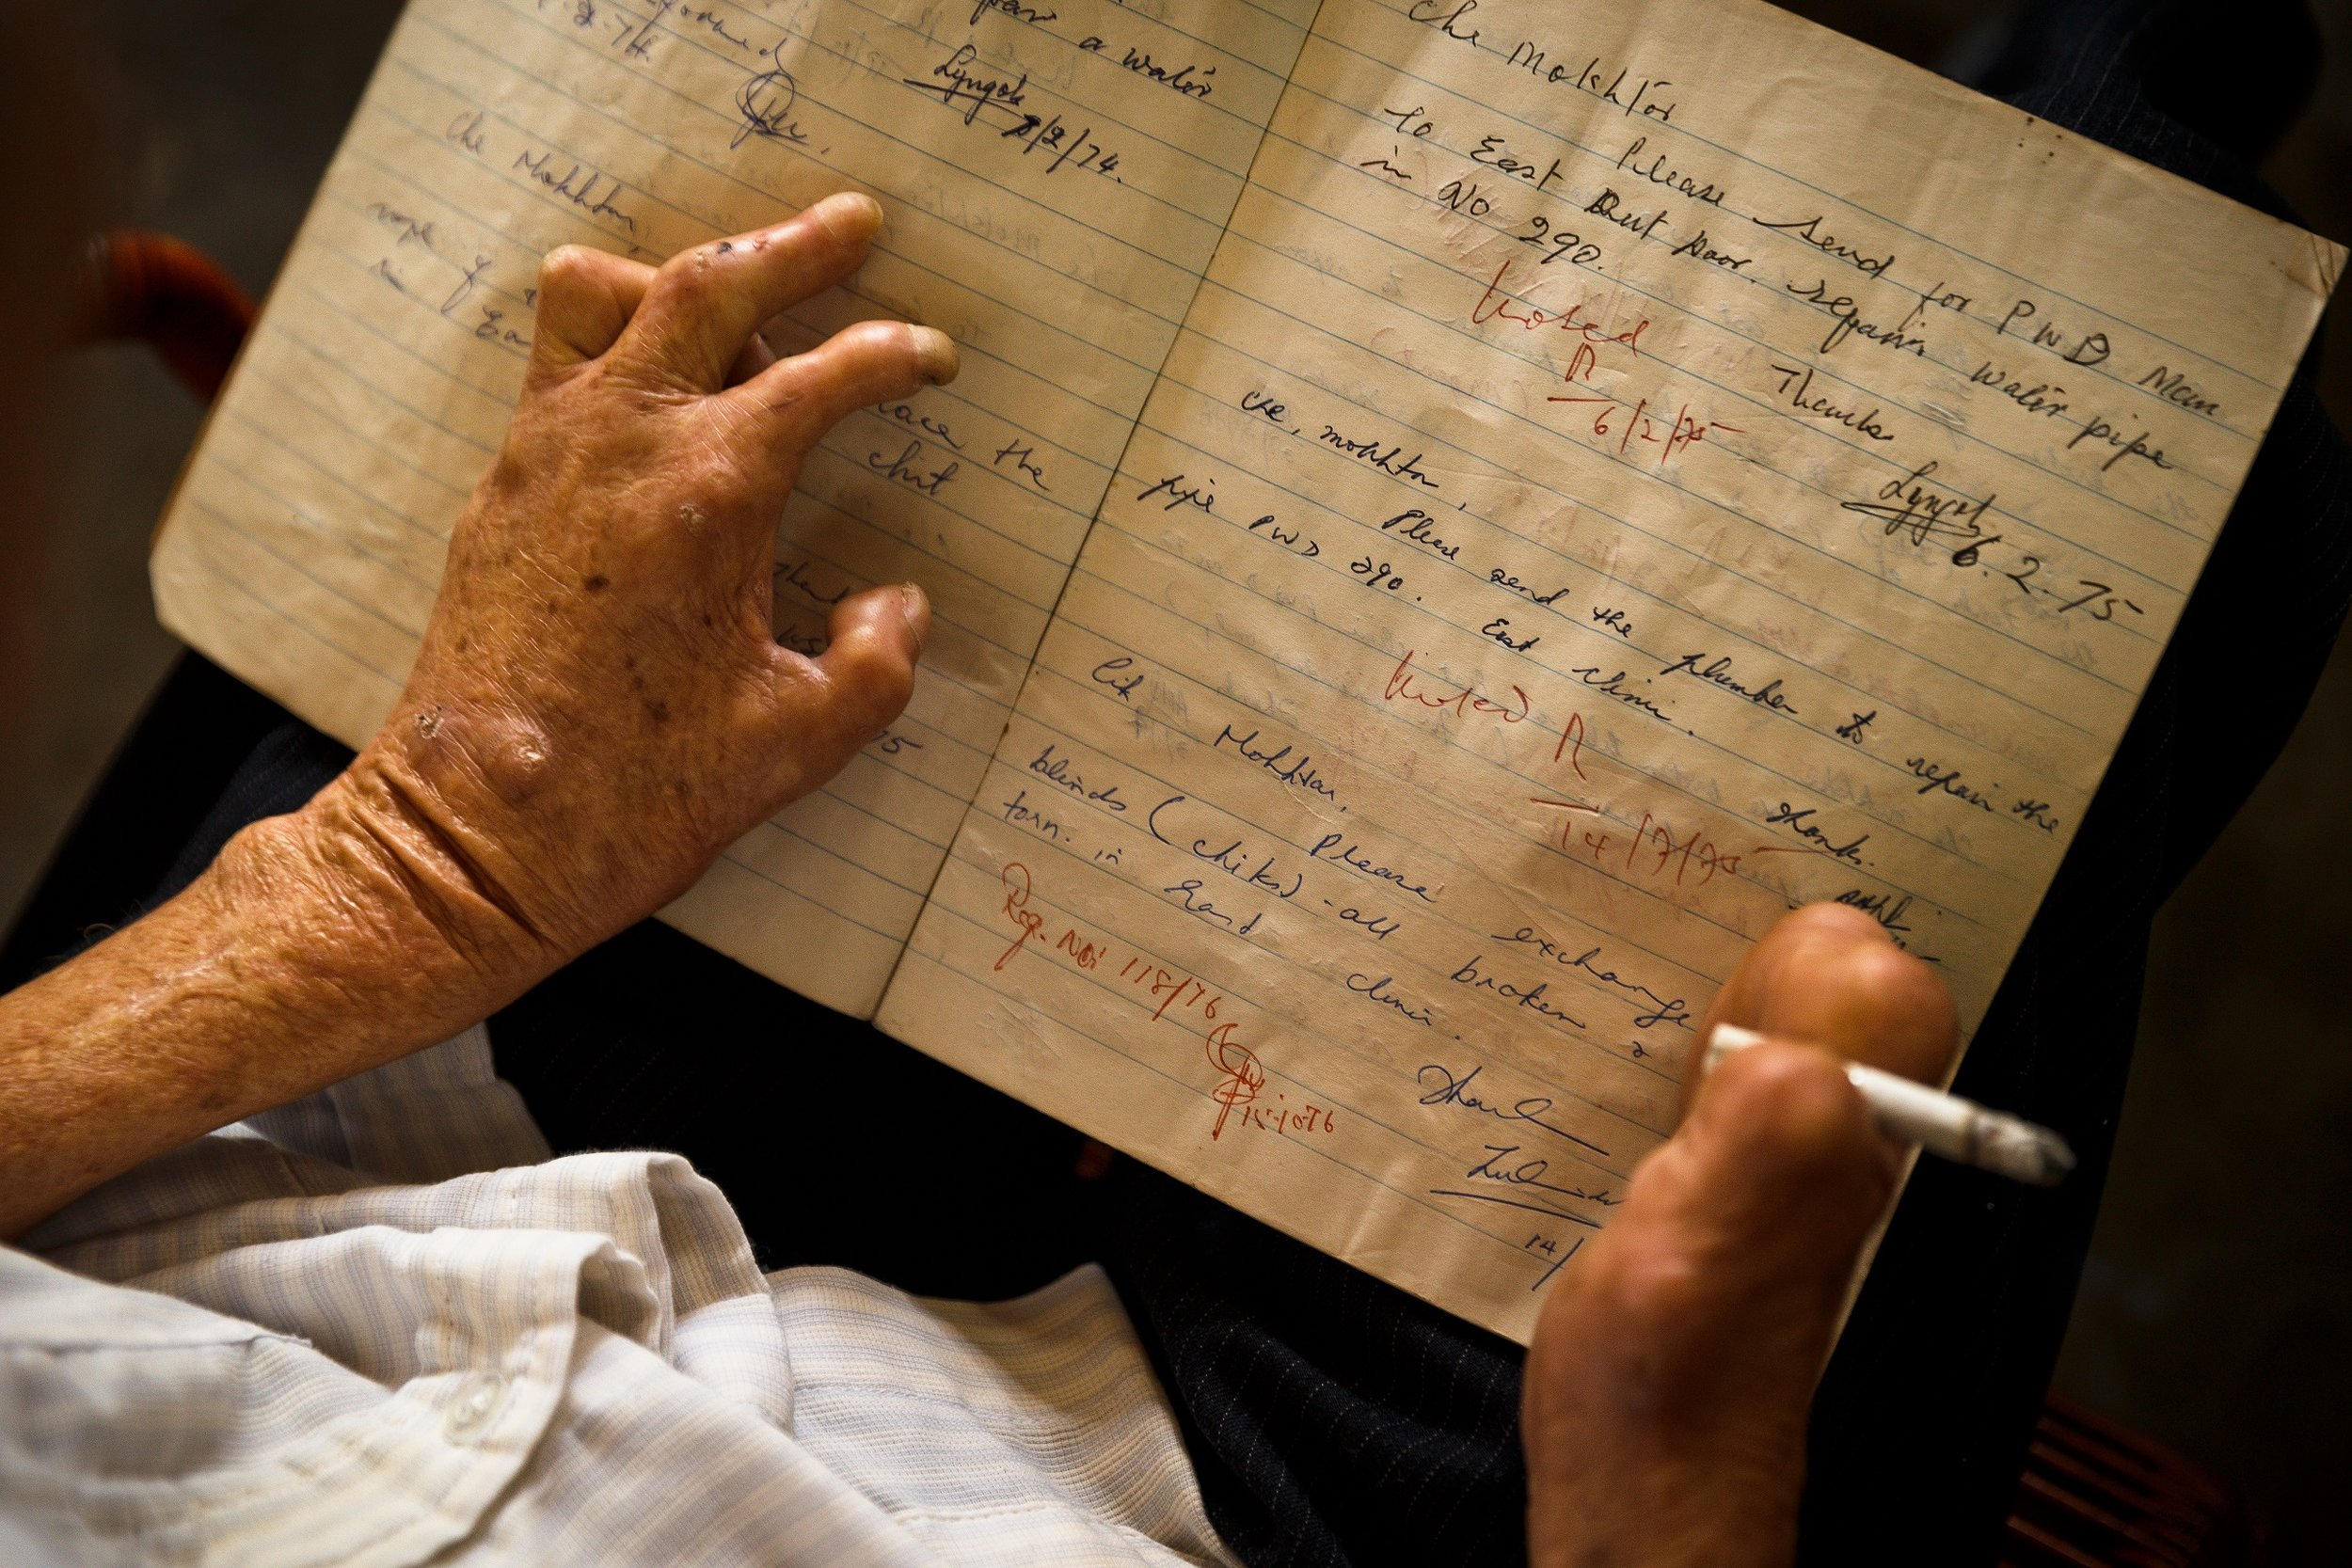 Leprosy has caused him to lose his fingers but he still manages to write. (photo by Mango Loke)